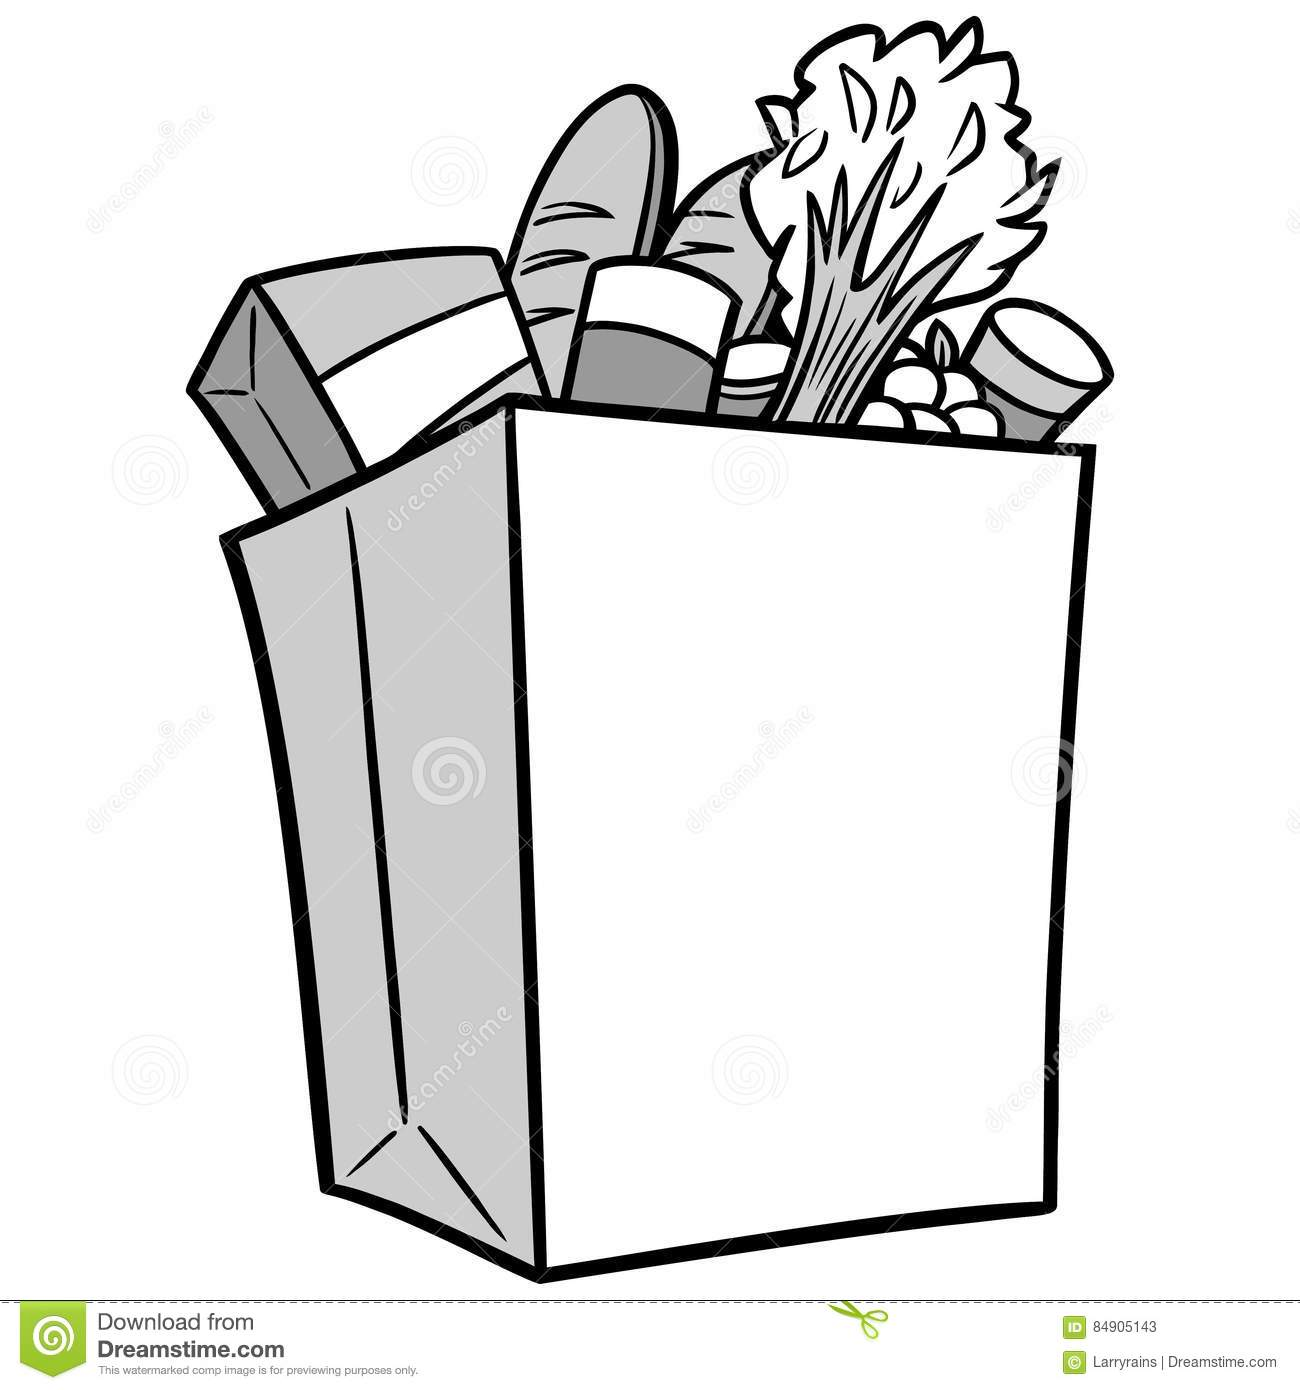 Shopping bag clipart black and white graphic transparent library Shopping bag clipart black and white 2 » Clipart Station graphic transparent library